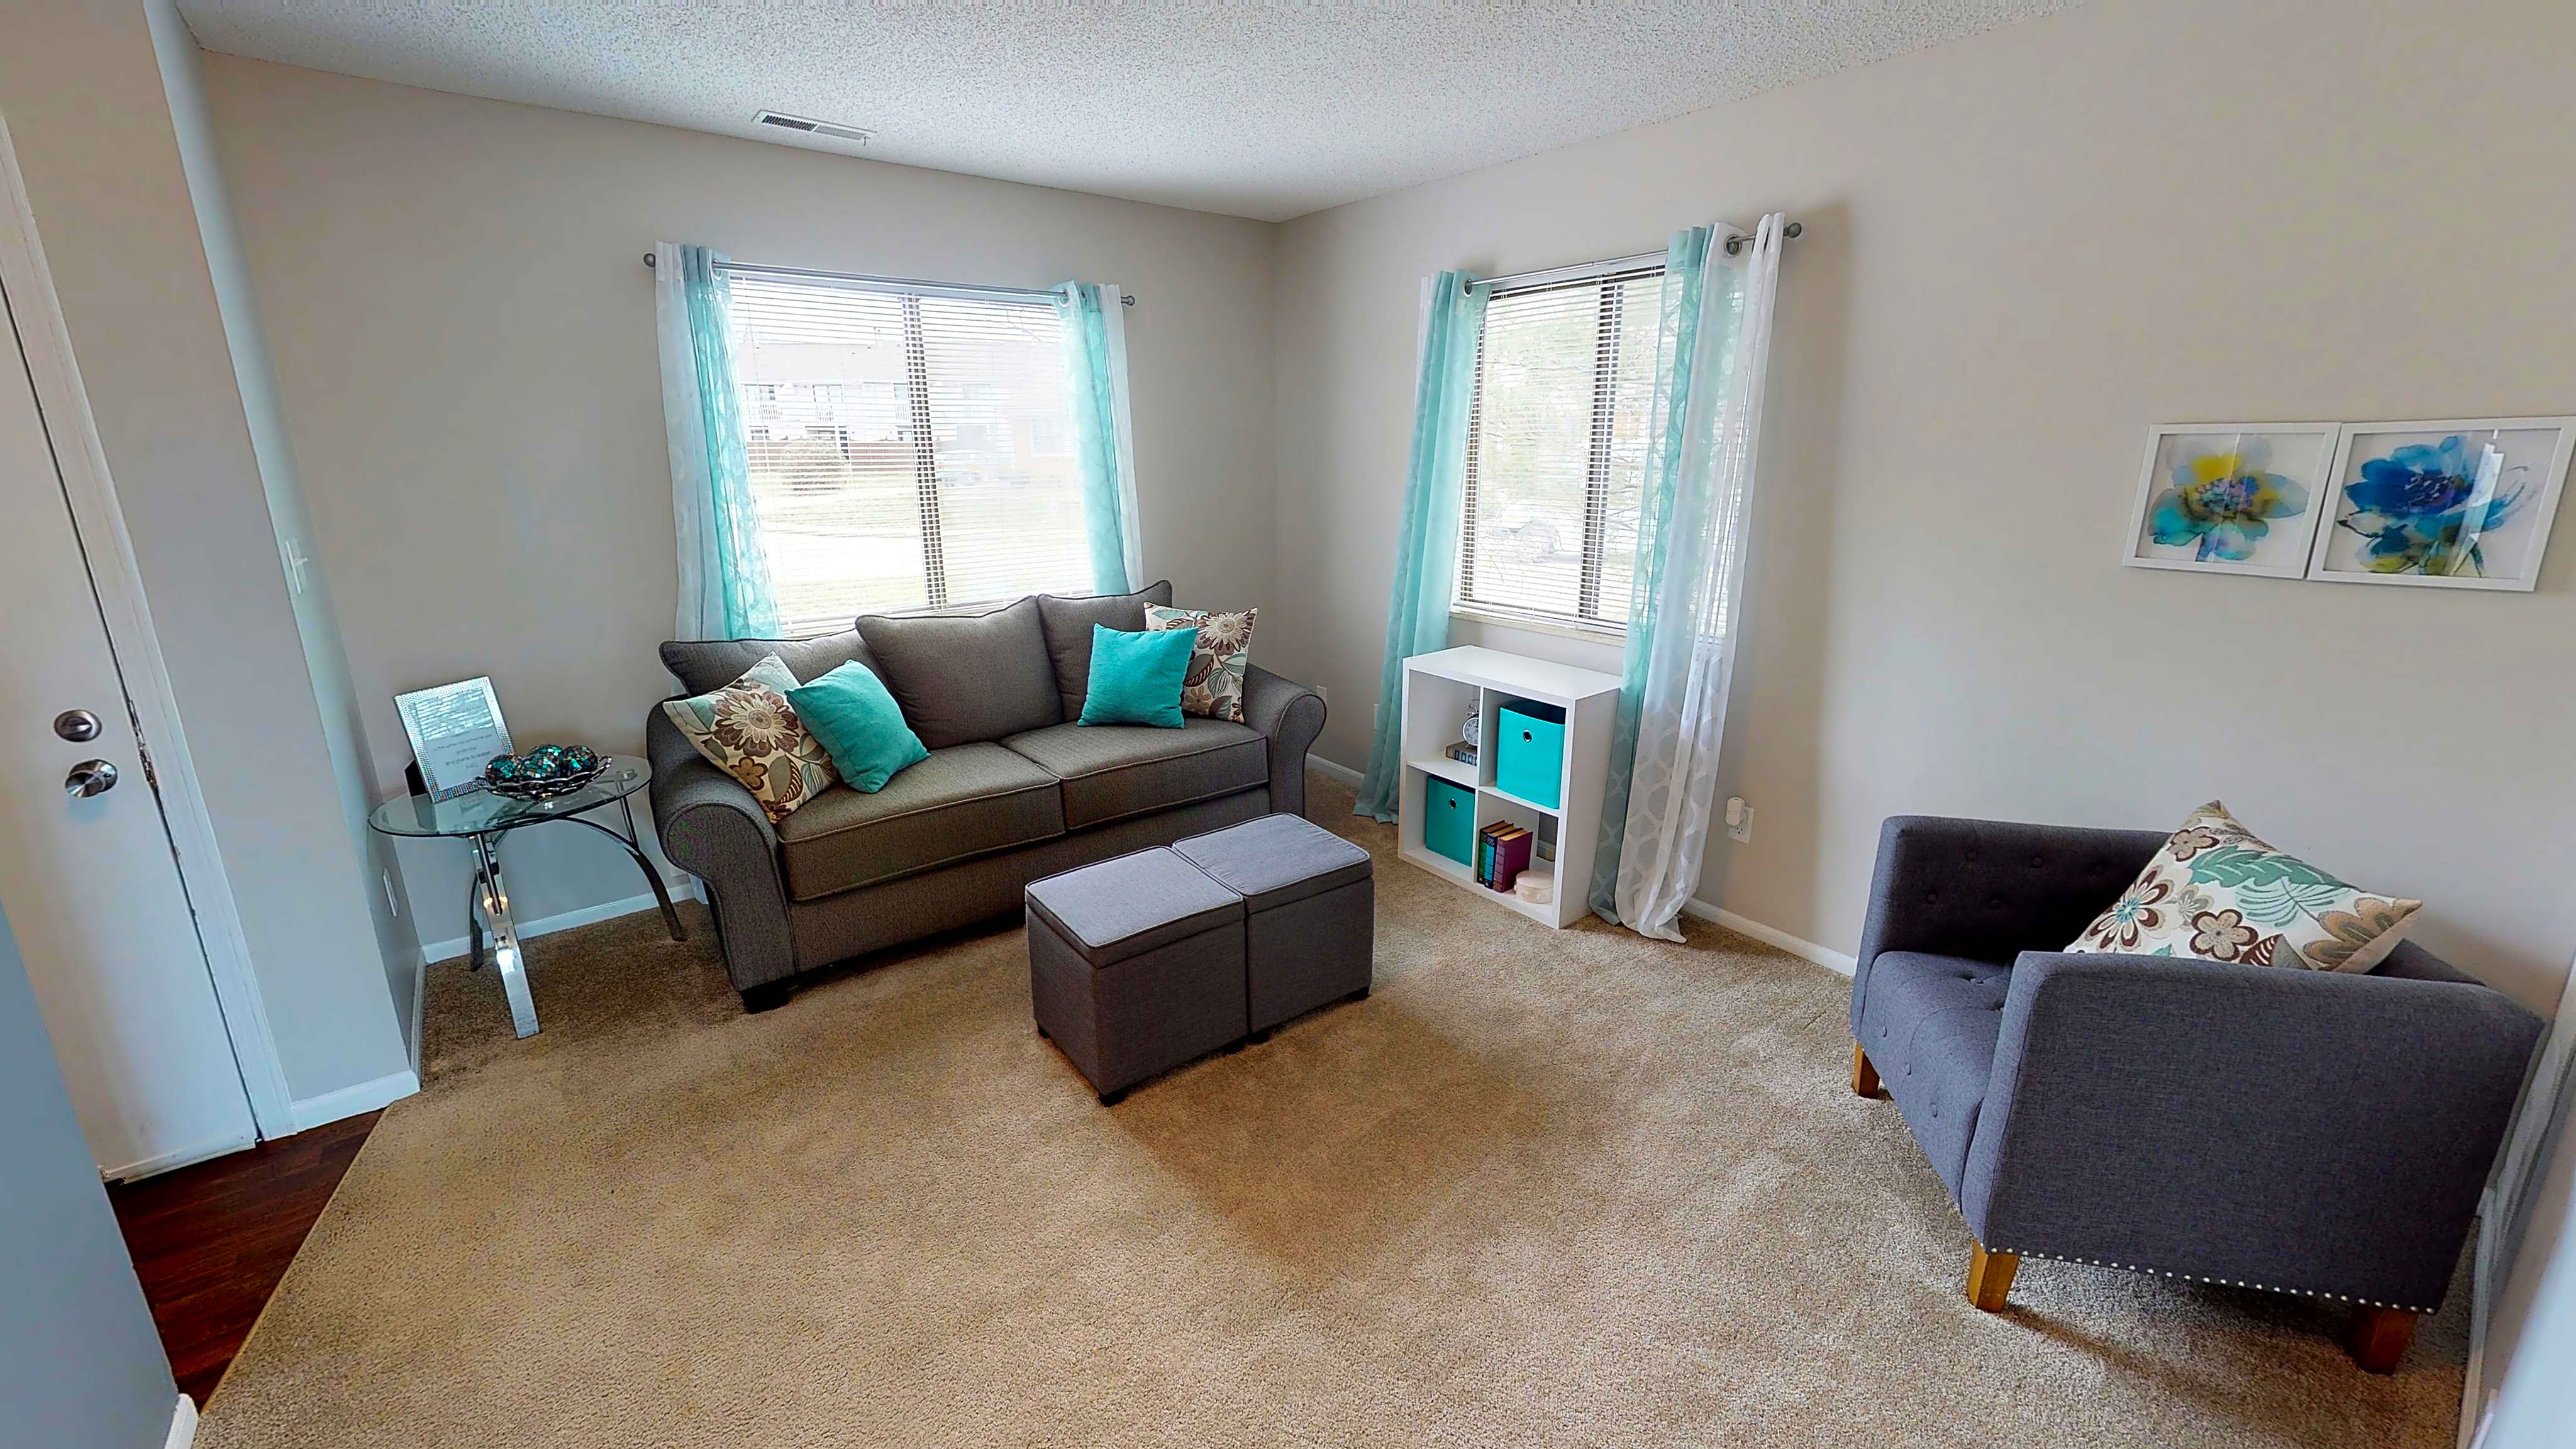 Apartments Near Ross Medical Education Center-Evansville Indian Woods Apartments of Evansville for Ross Medical Education Center-Evansville Students in Evansville, IN